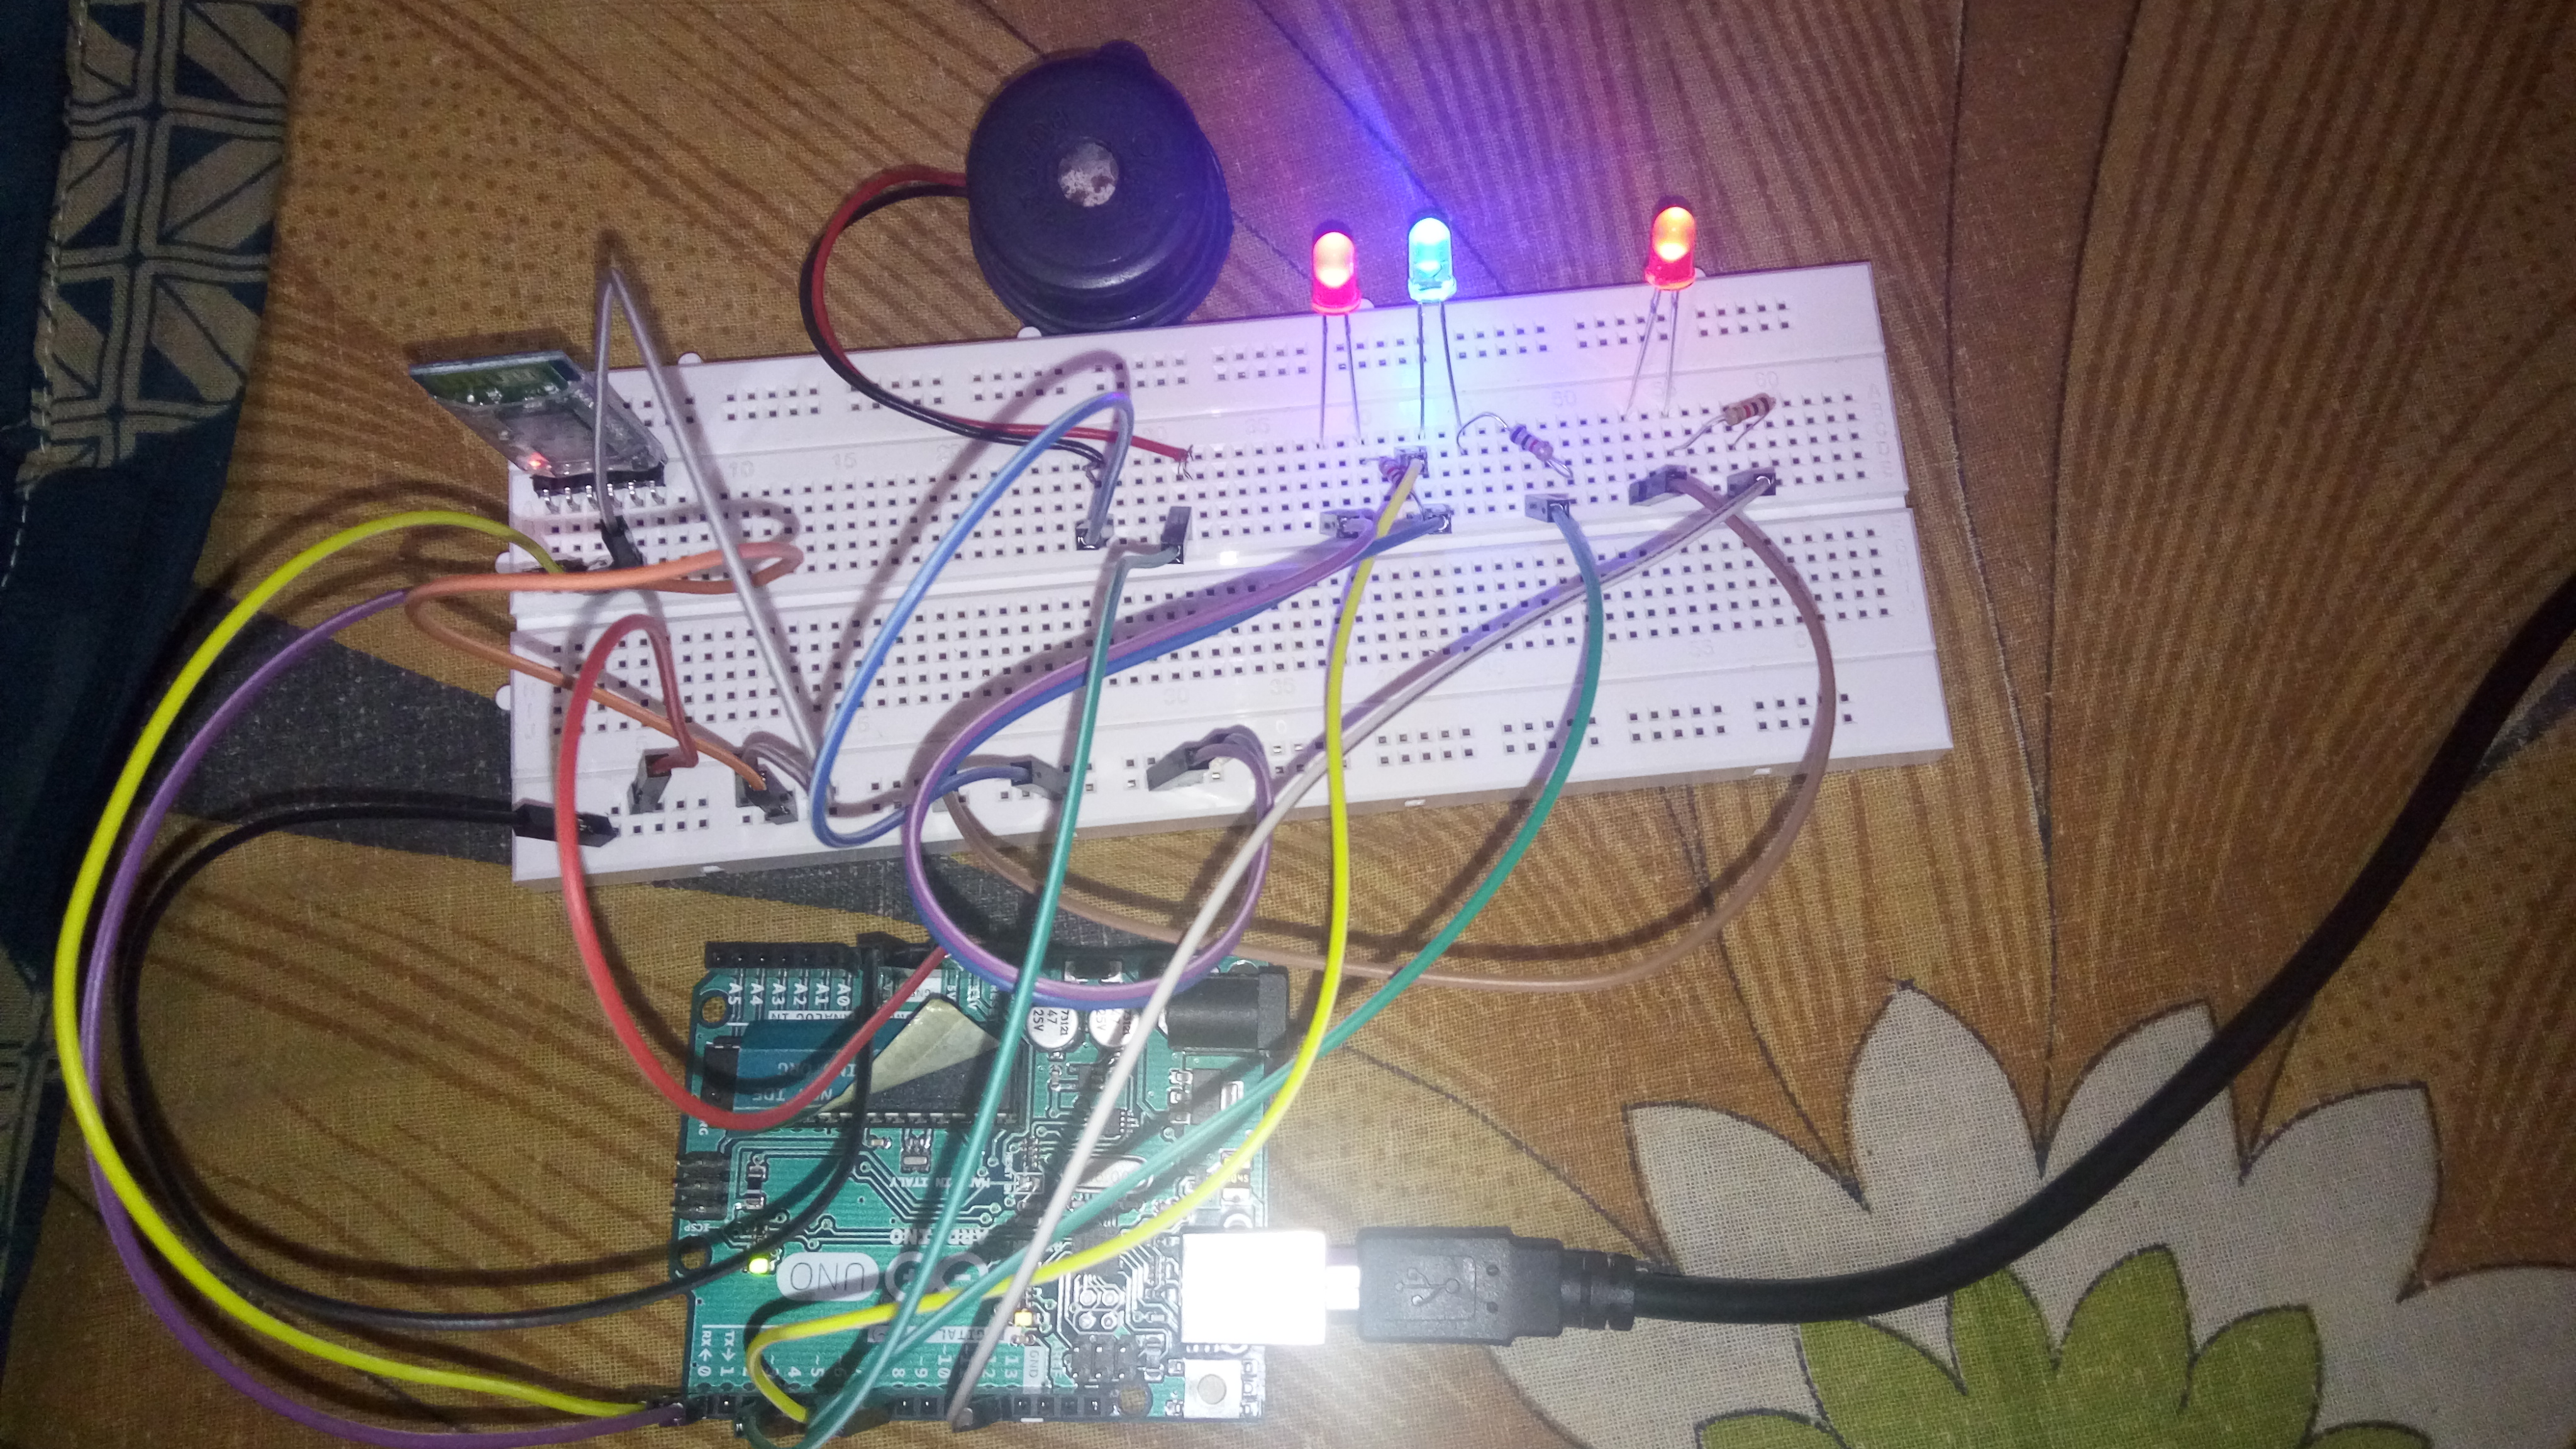 LED, Buzzer Control Using Bluetooth Module and Arduino